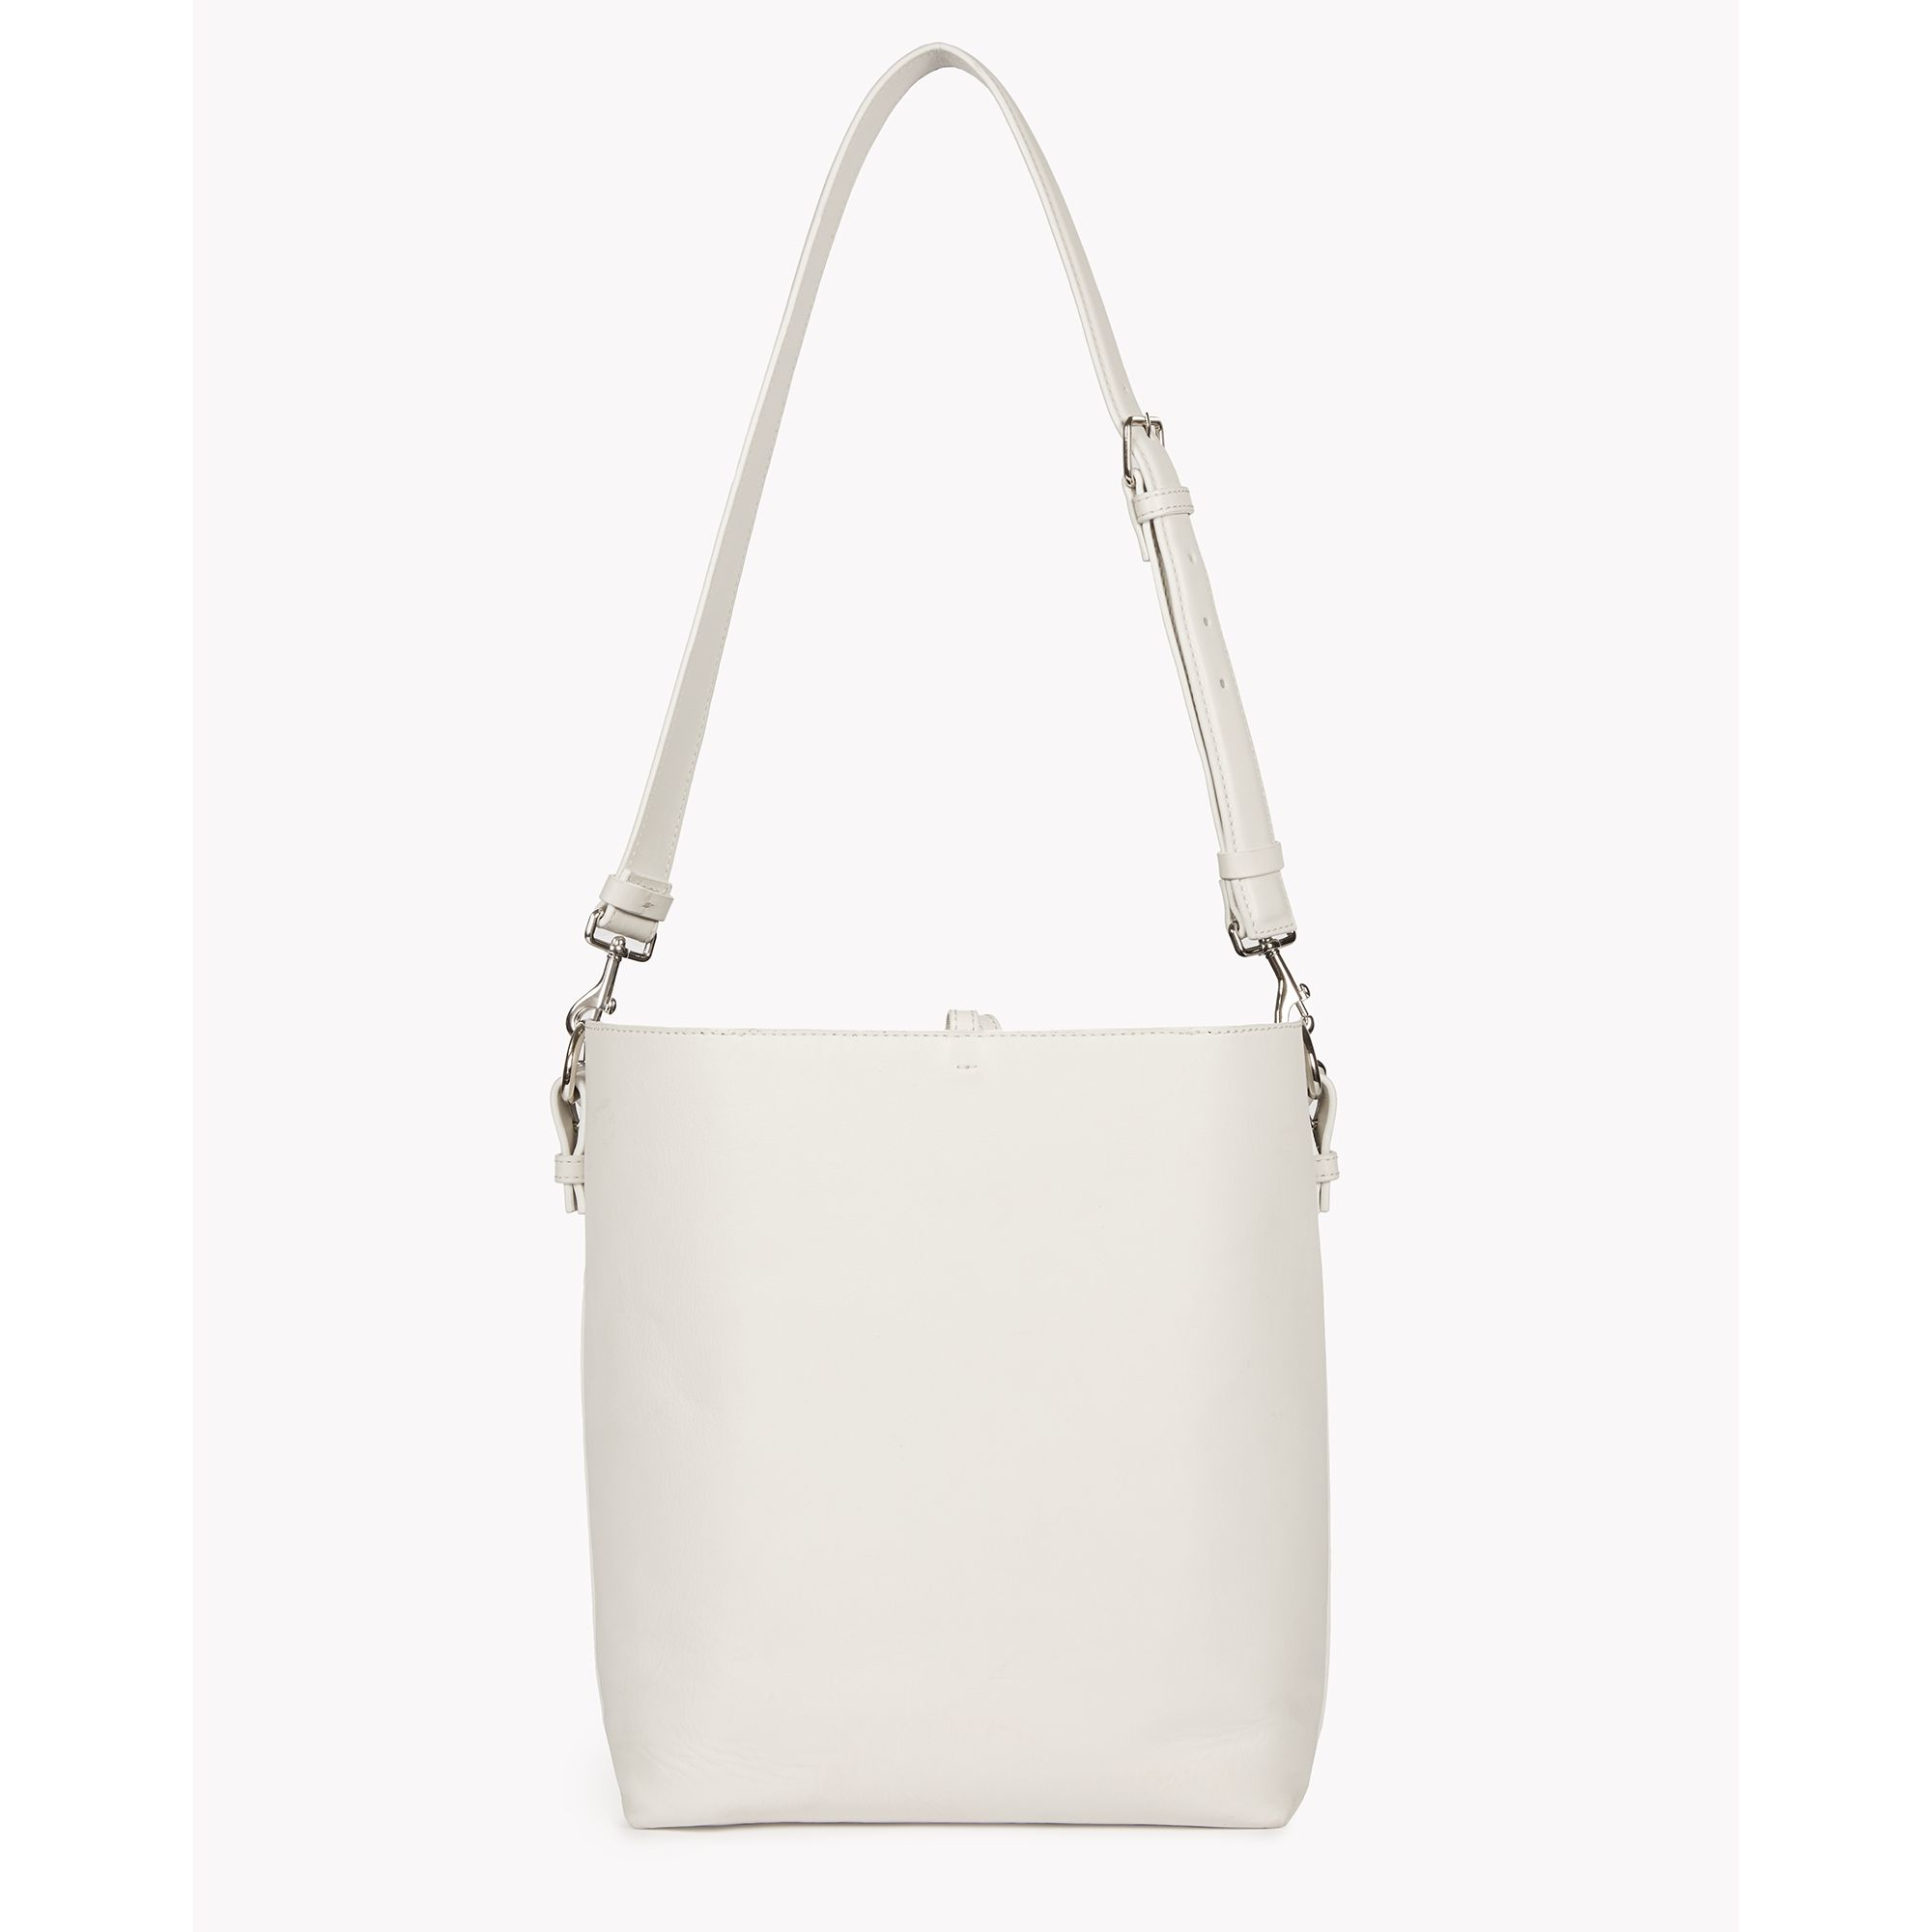 b465d3e42b6 Lyst - Theory Small Bucket Bag In Linden Leather in White